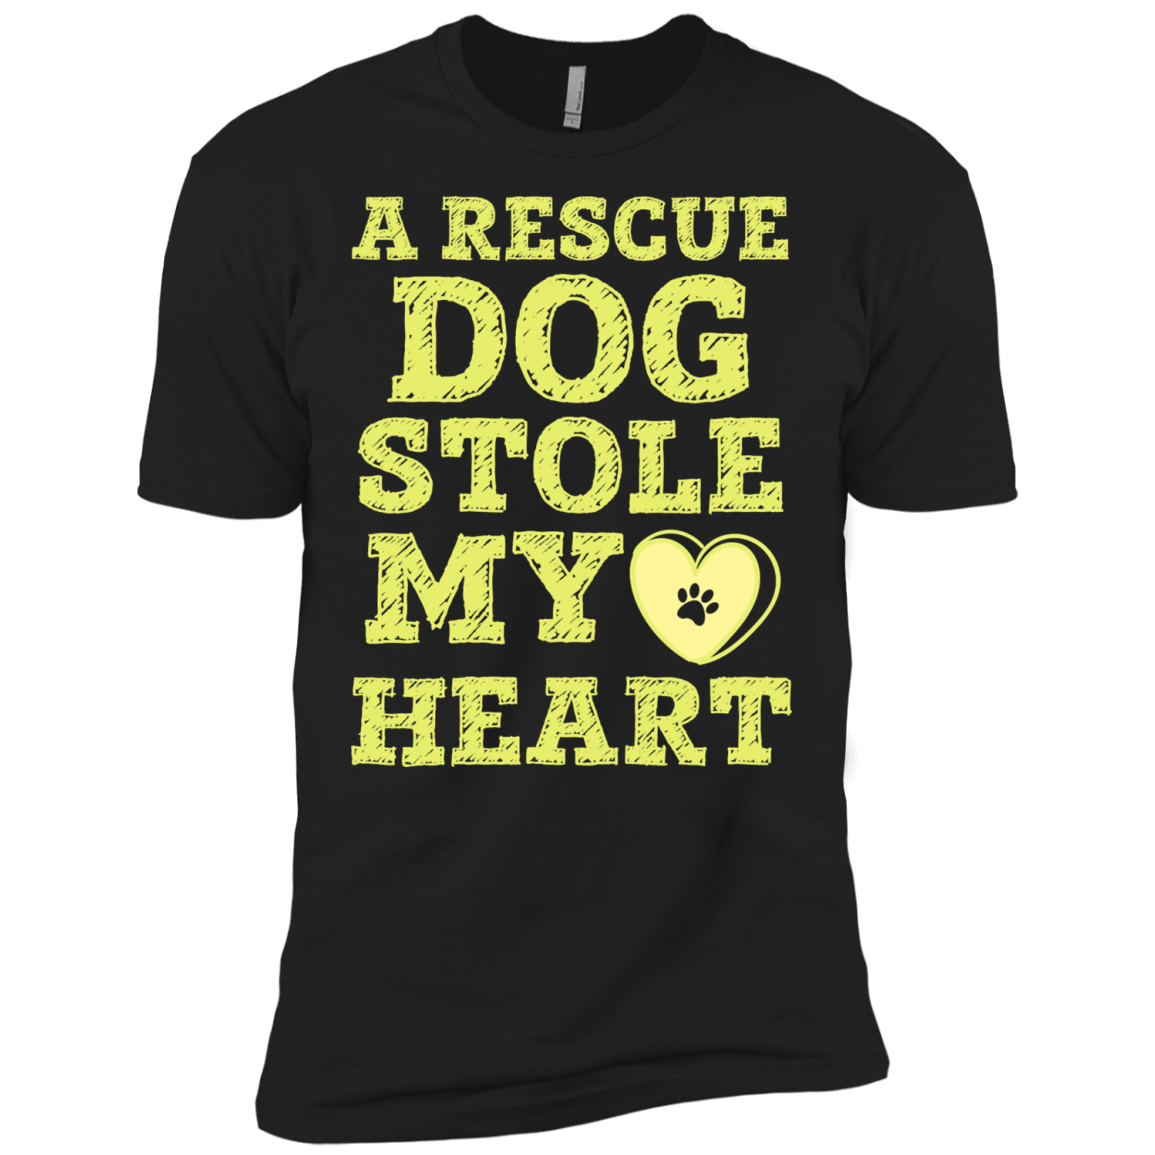 A Rescue Dog Stole My Heart T-Shirt & Hoodie - The Sun Cat